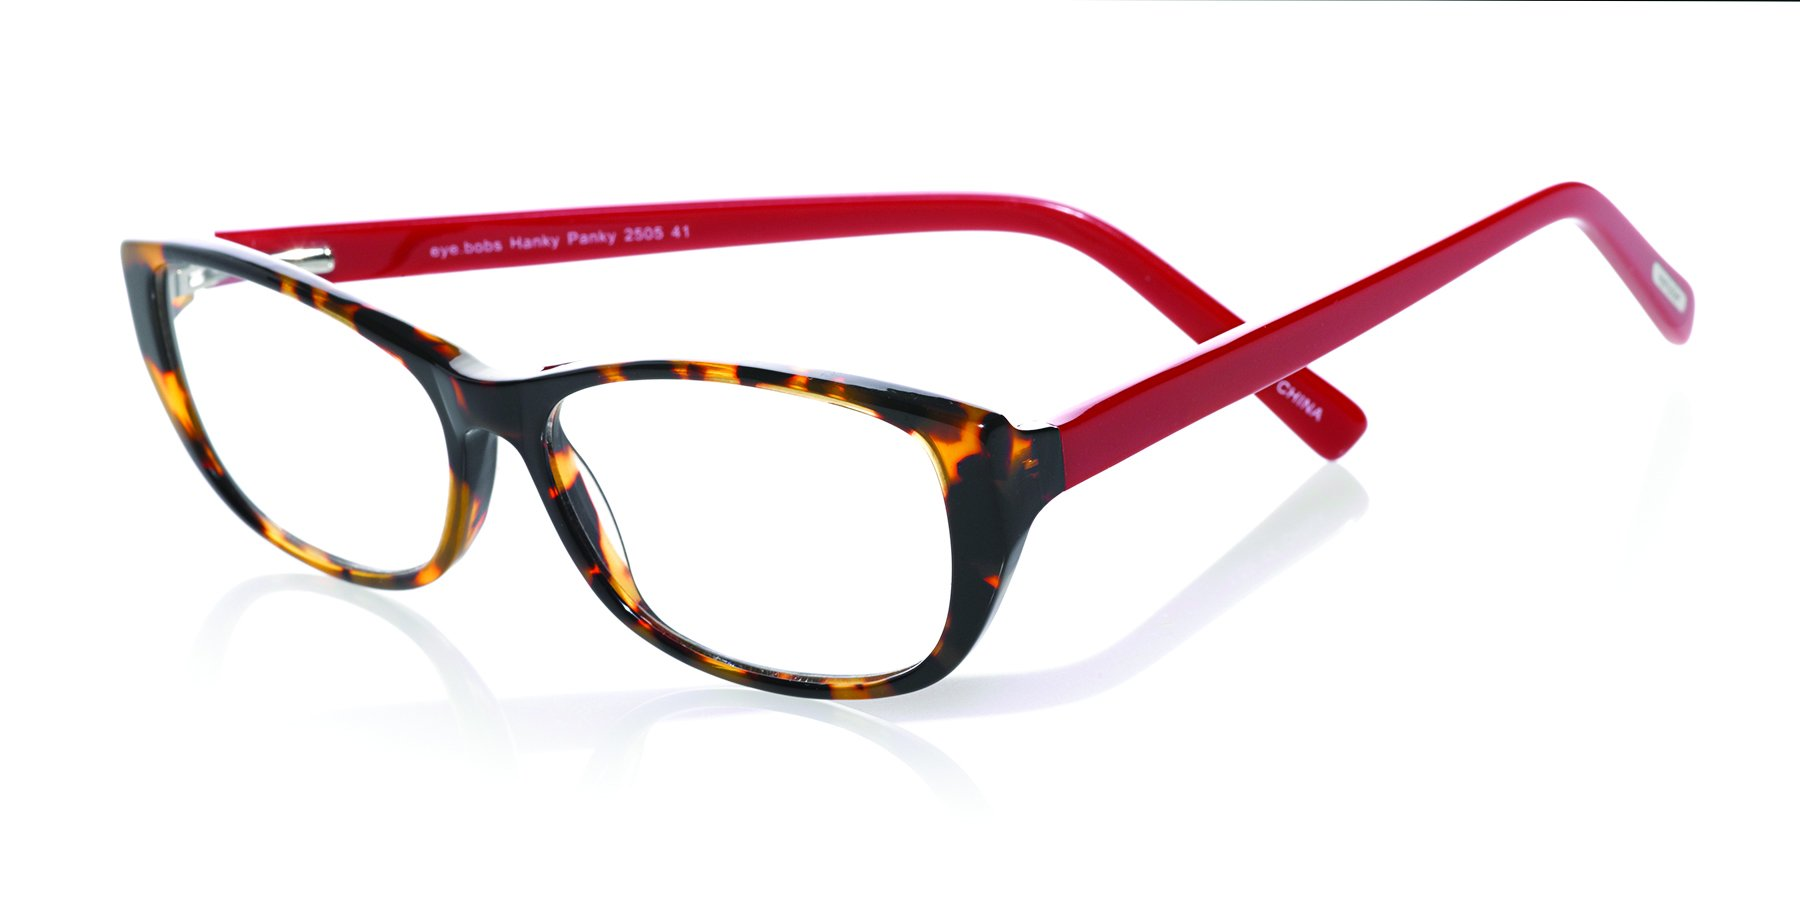 eyebobs Hanky Panky, Tortoise and Red, Reading Glasses Superior Quality – Because Your Eyes Deserve The Good Stuff